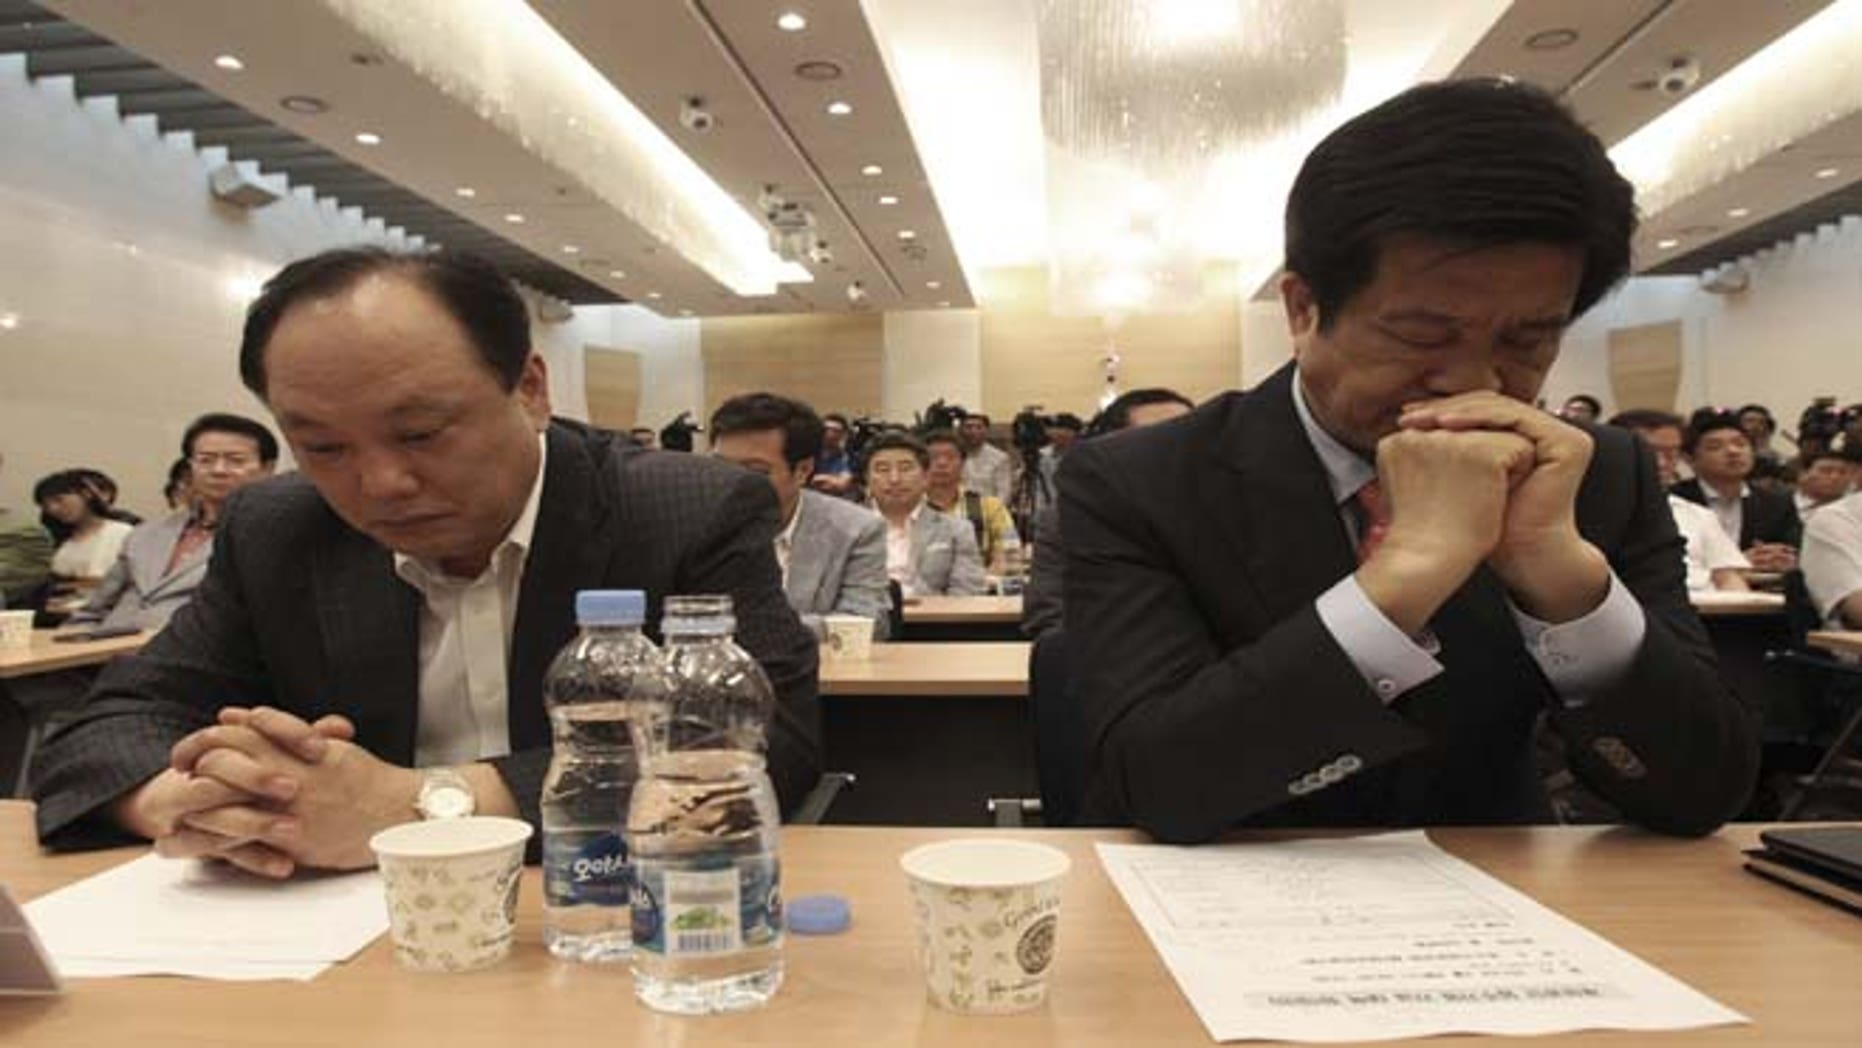 July 3, 2013: South Korean owners who run factories in the suspended inter-Korean Kaesong Industrial Complex, attend an emergency meeting in Seoul, South Korea. The owners demanded the South Korean Unification Ministry to approve a visit to the North Korean border town Kaesong and insisted their government and North Korean authorities resume the operation of the joint industrial complex.